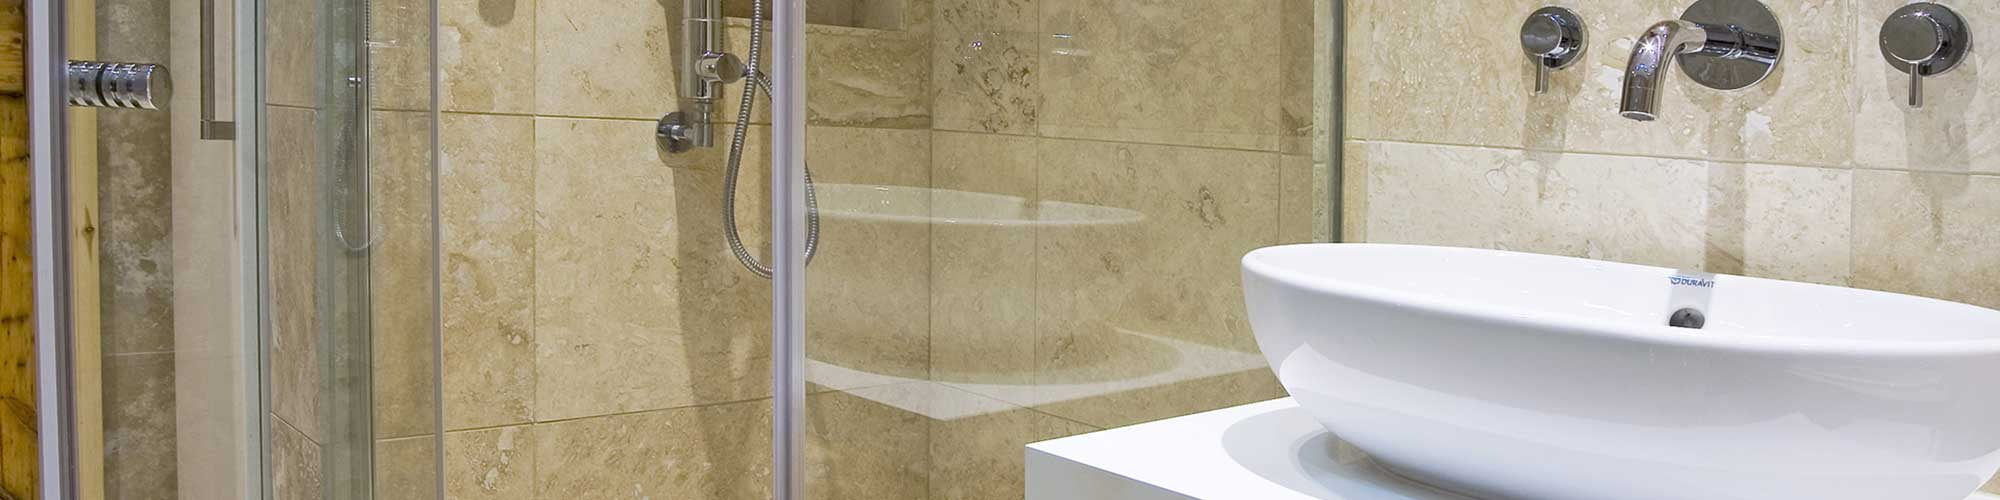 Walk-In Shower Installation | Toledo, OH